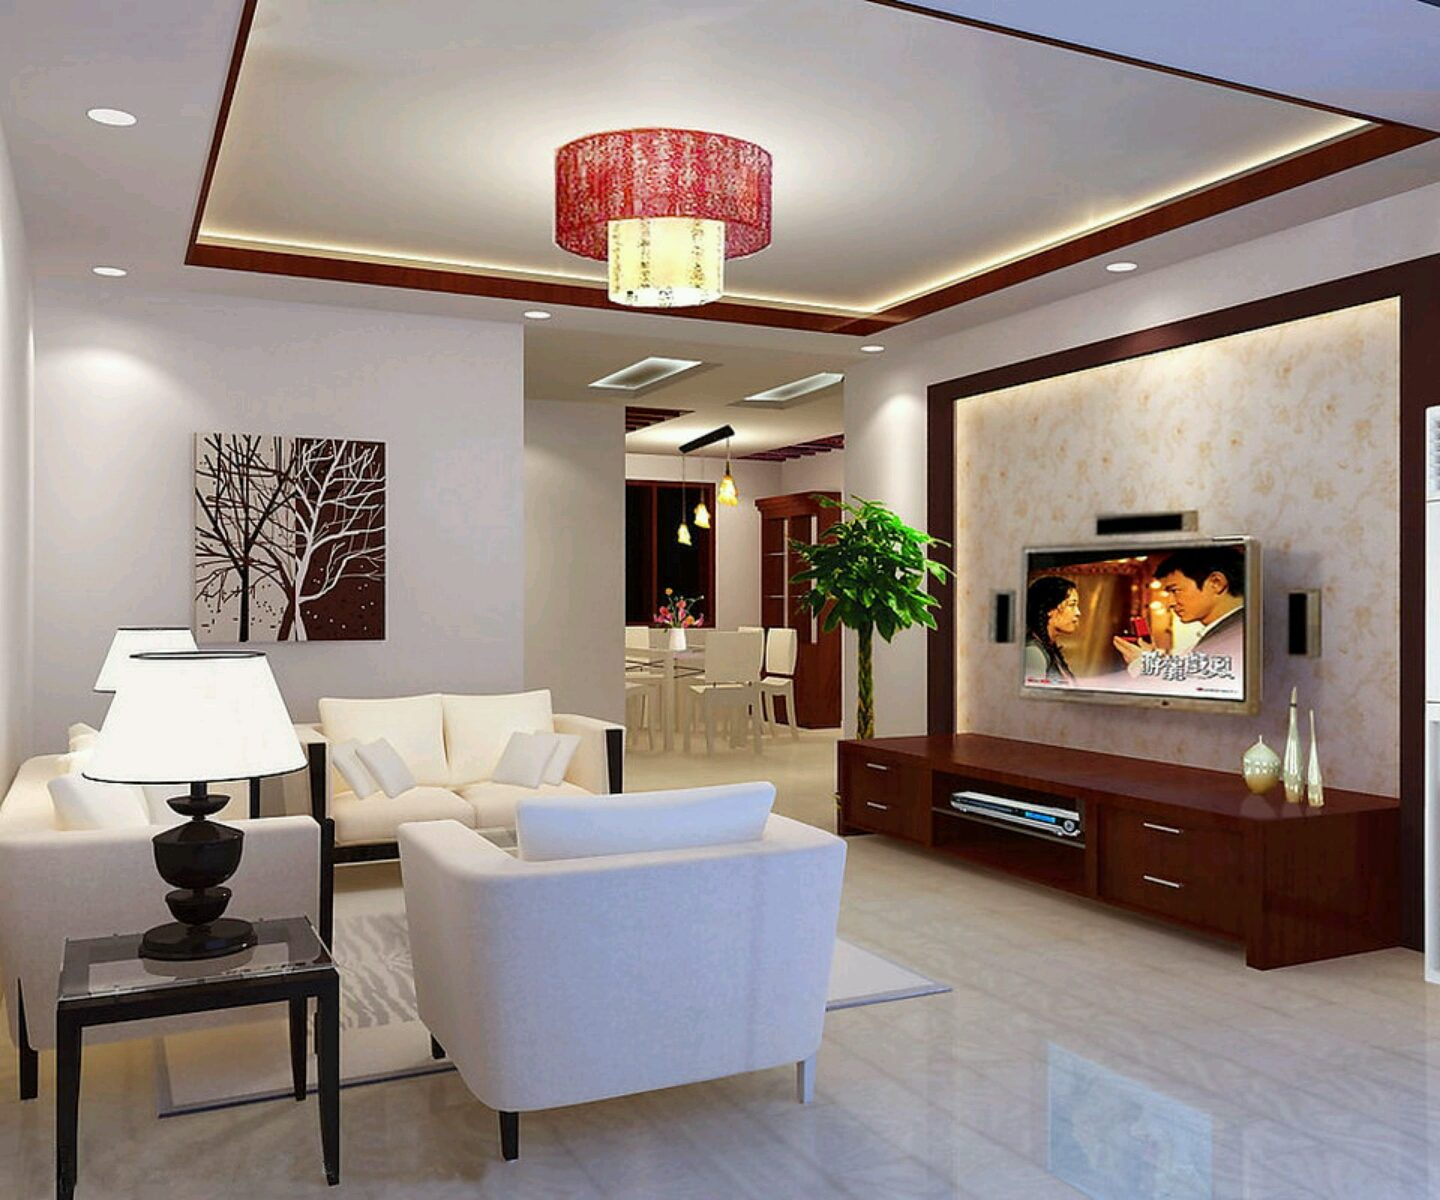 Full Size Of Living Room Indian Designs For Small Spaces Family Ideas Sofa Set Cheap Decorating Walls Apartment Interior Design Hall In Style Cozy Interior Design Center Inspiration